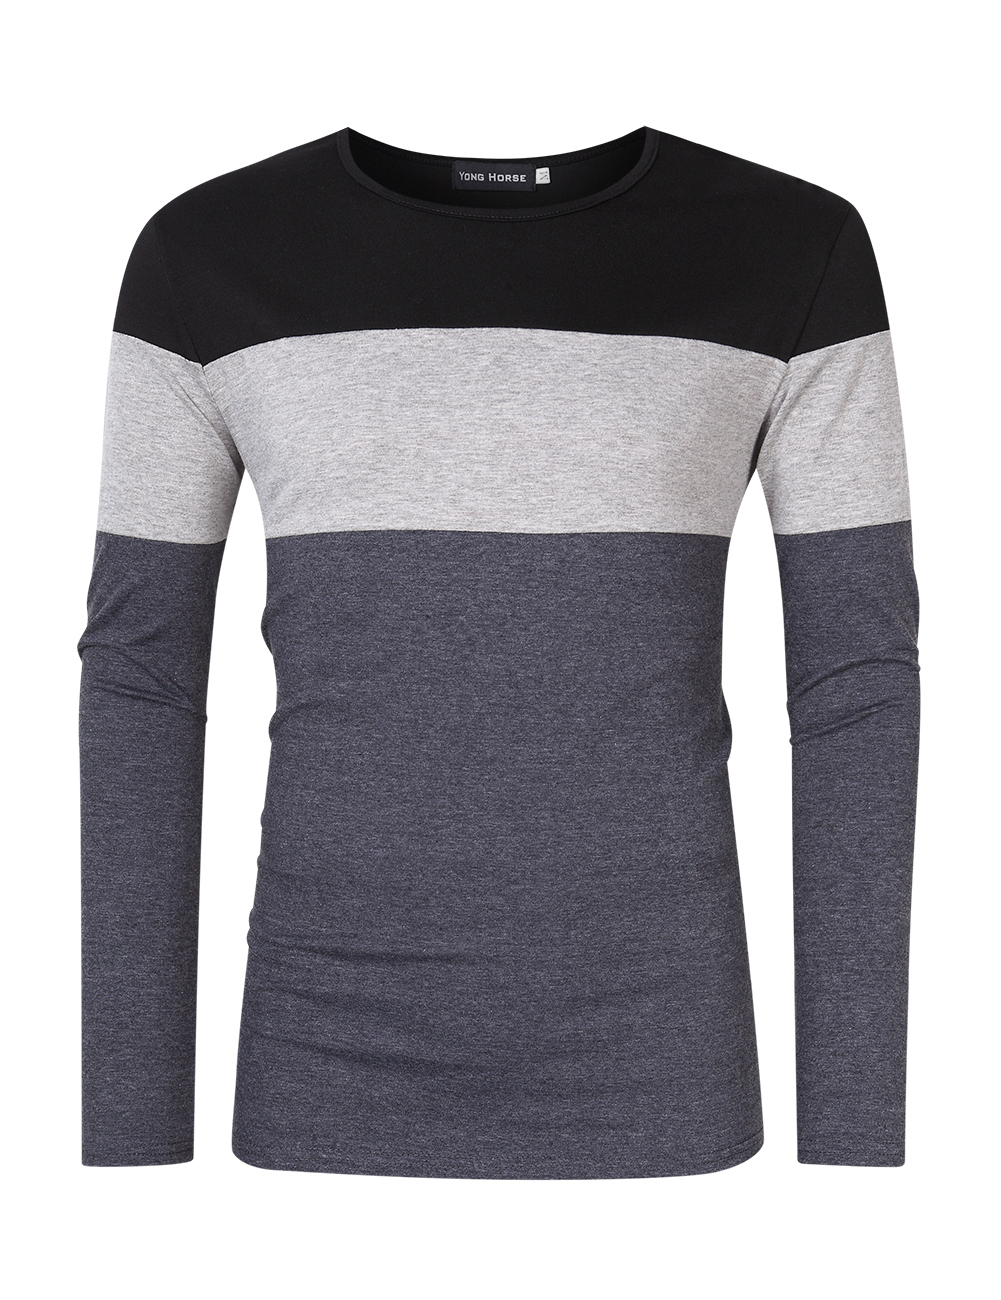 Men's Color Block Basic Cotton T-Shirt